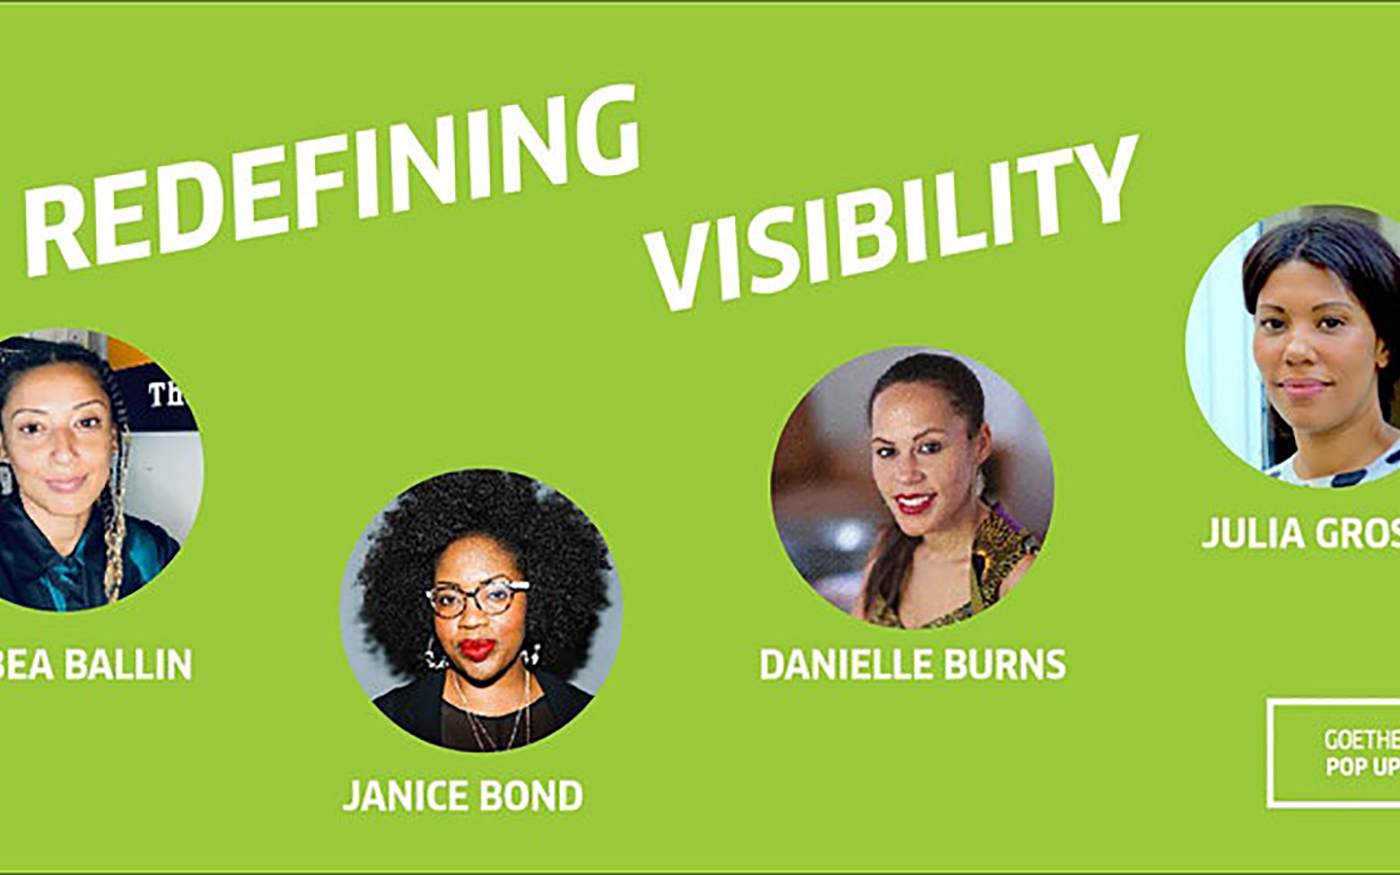 Curatorial Conversation with CAMH's Janice Bond | Redefining Visibility